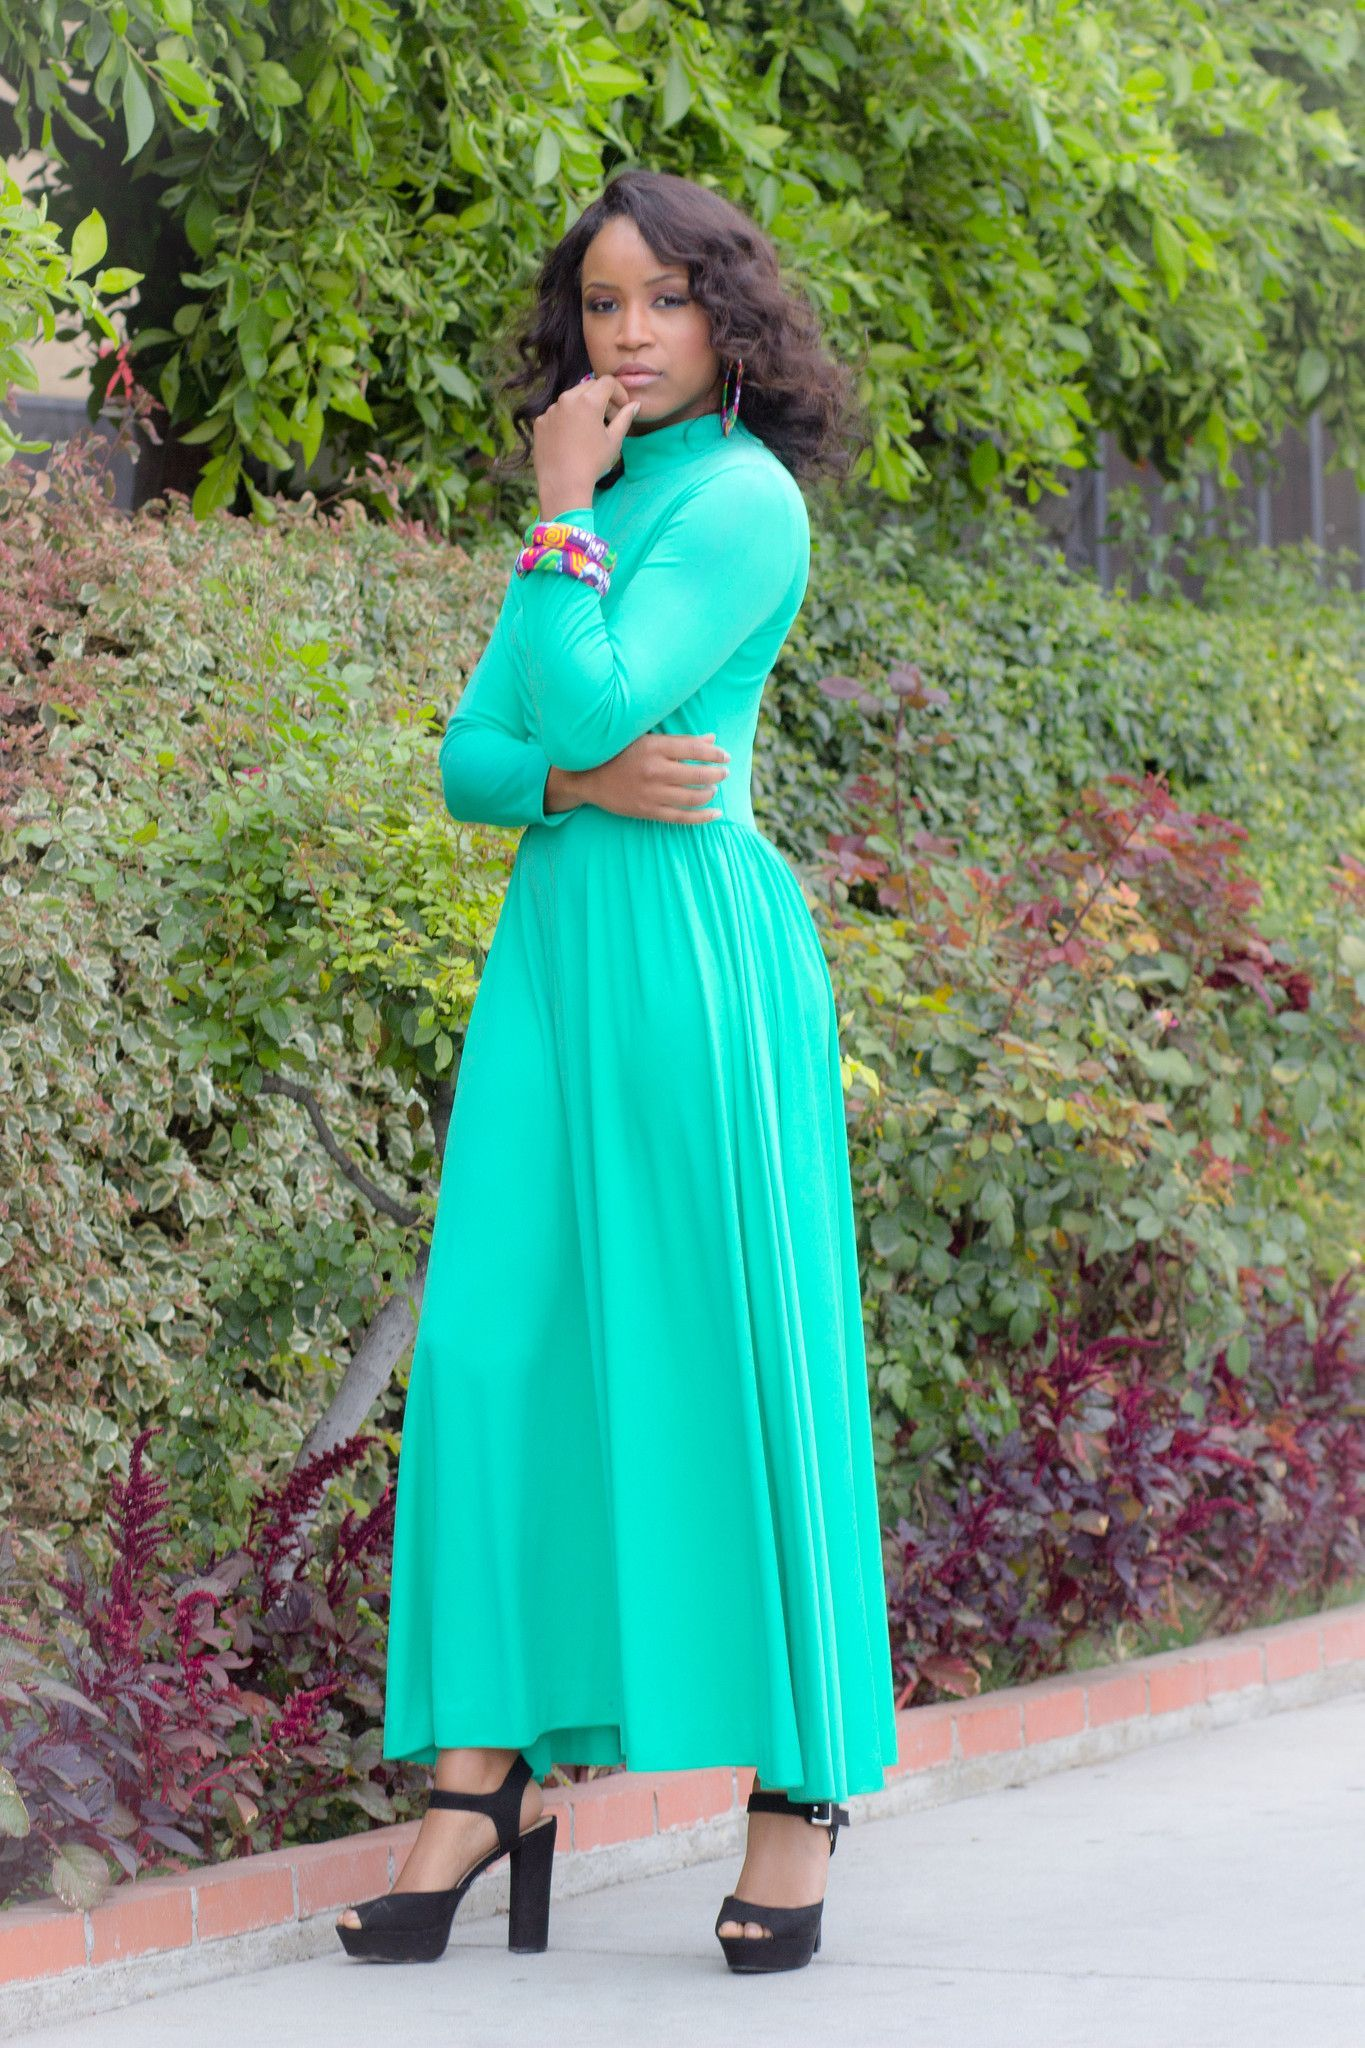 Us alison ayers knit green maxi dress outfits pinterest